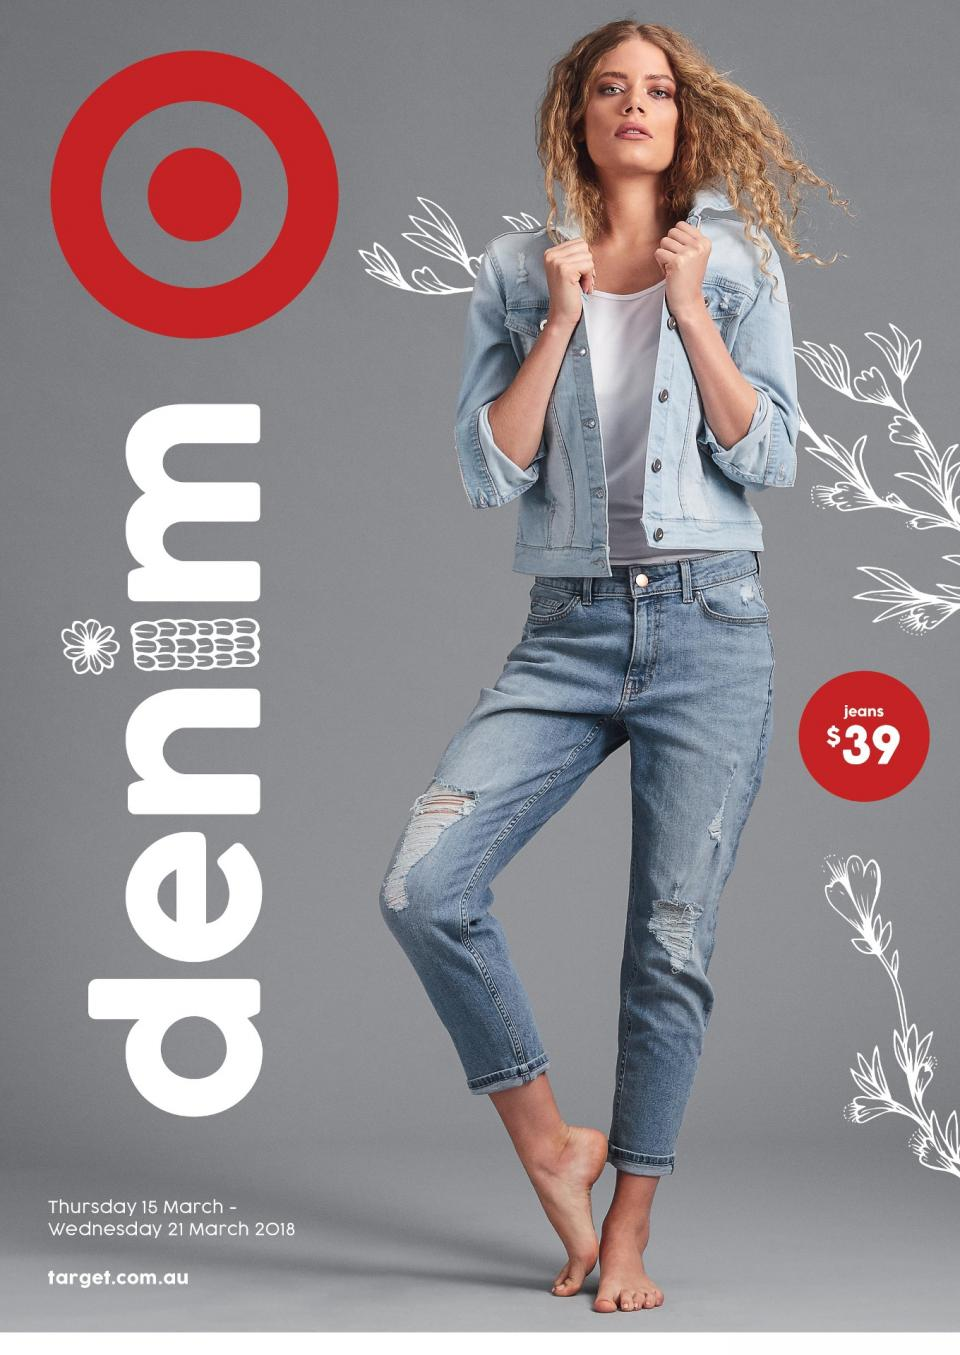 Target Catalogue 14 - 21 March 2018